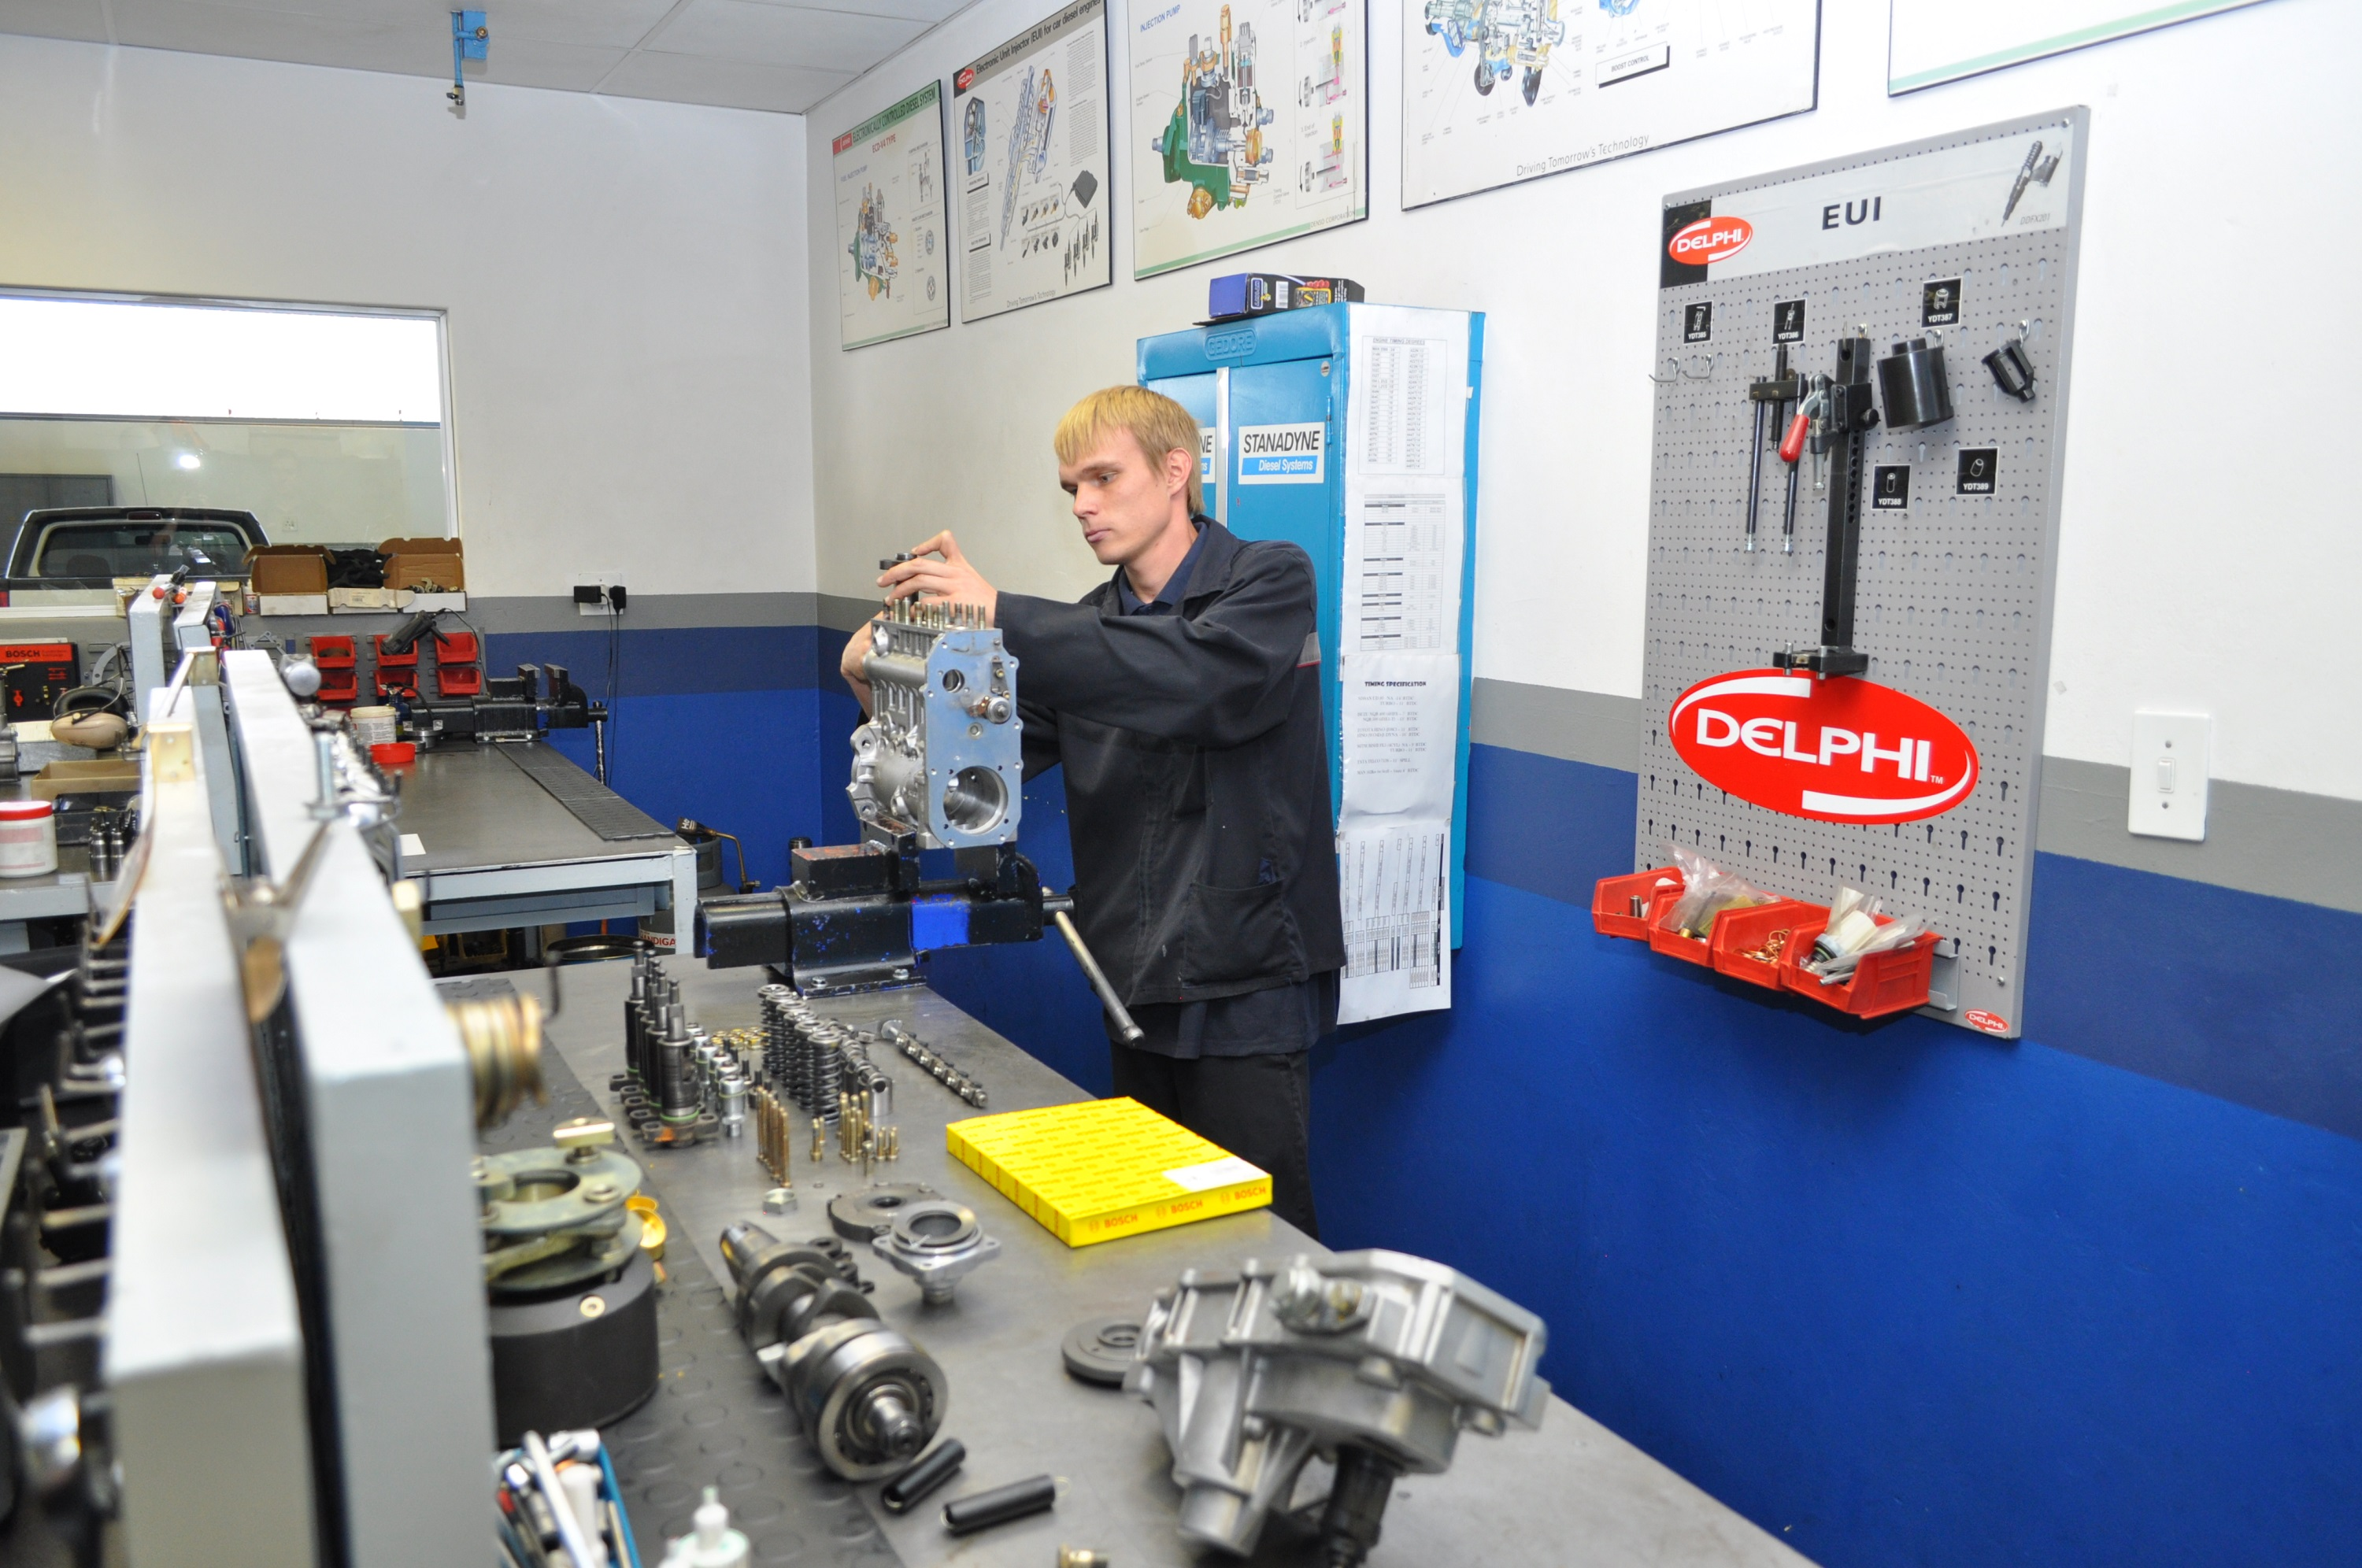 As an approved Delphi agency, all repairs undertaken at RFI's Germiston-based facility carry a full Delphi guarantee. The OEM's software is available for E3 diesel electronic unit injector testing, making it possible for the RFI team to access the trim code of the injector.